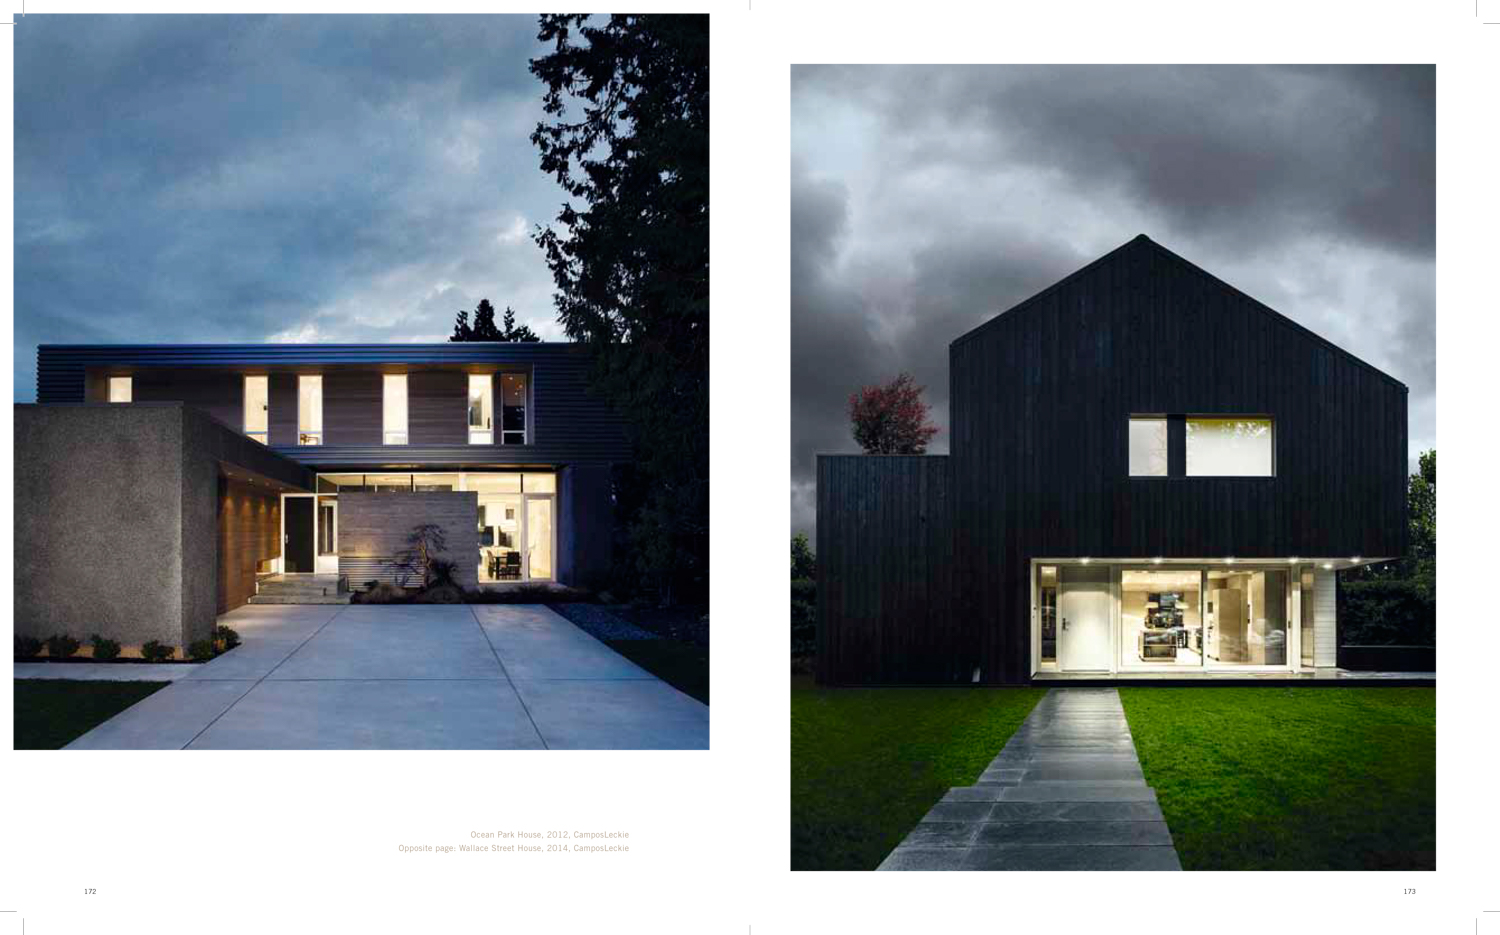 Modern Houses_3rd proof_spreads 89.jpg